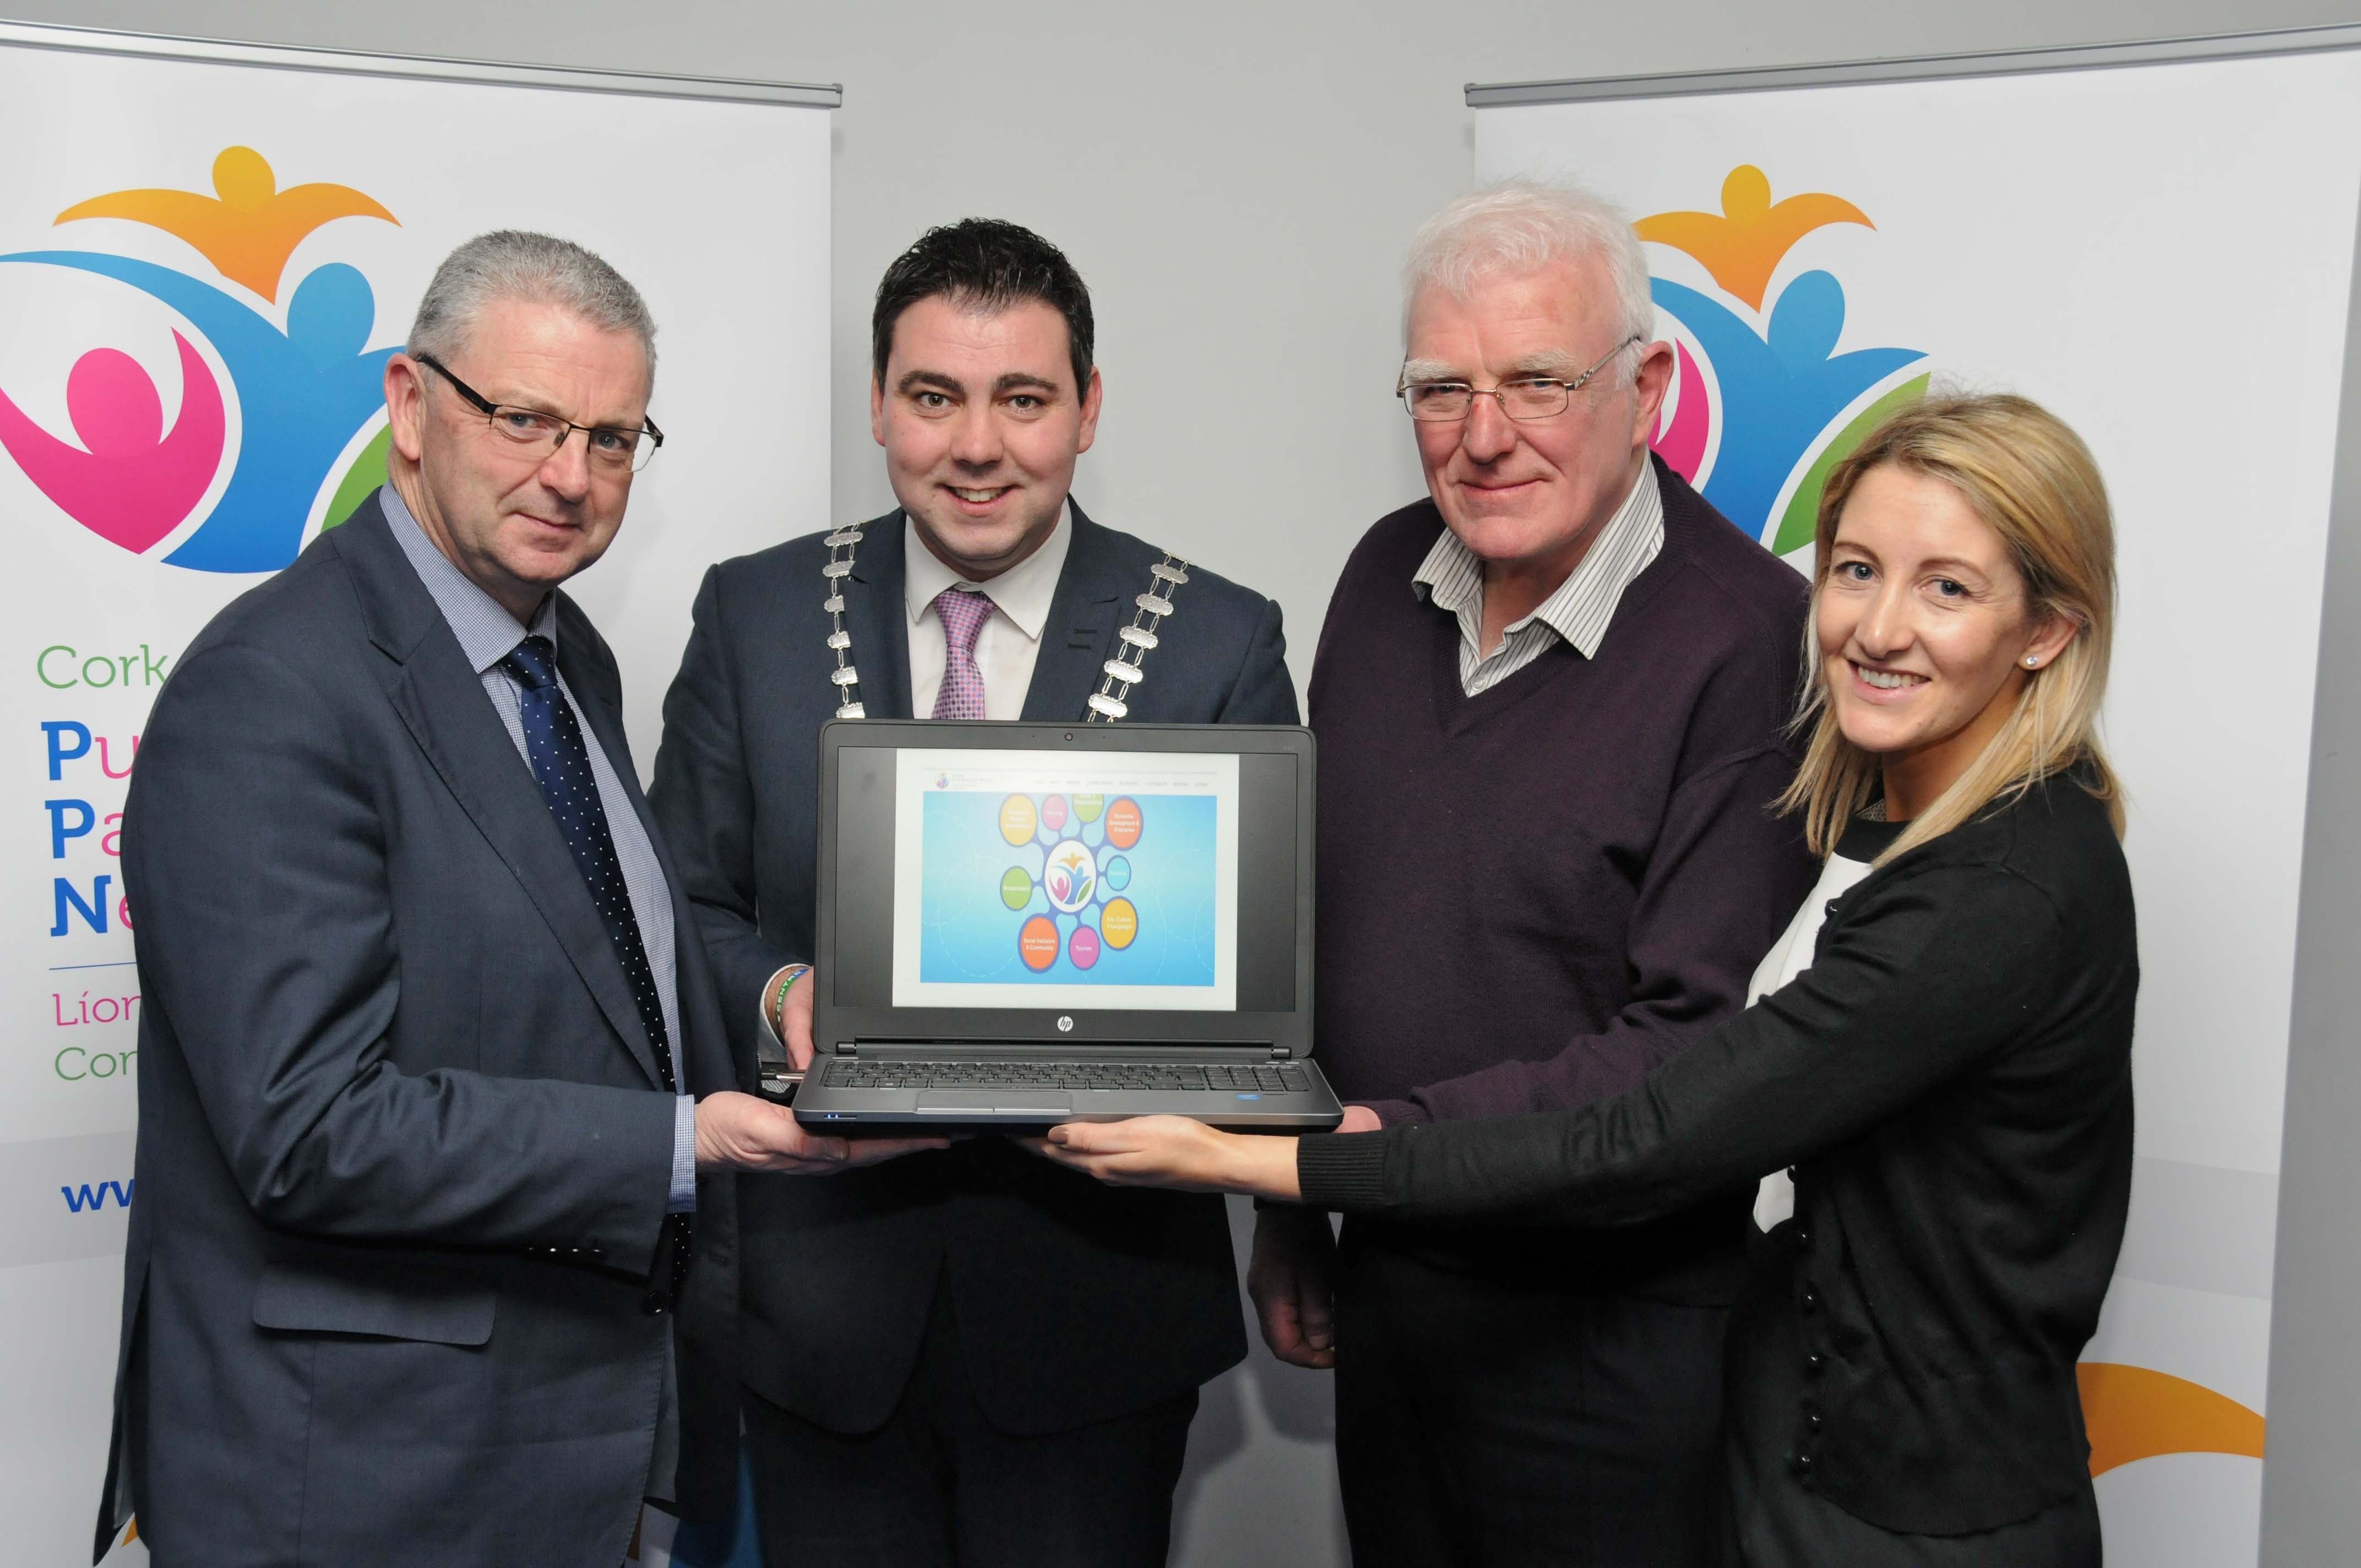 9.Mayor + Ballincollig Tidy Towns + PPN Co.